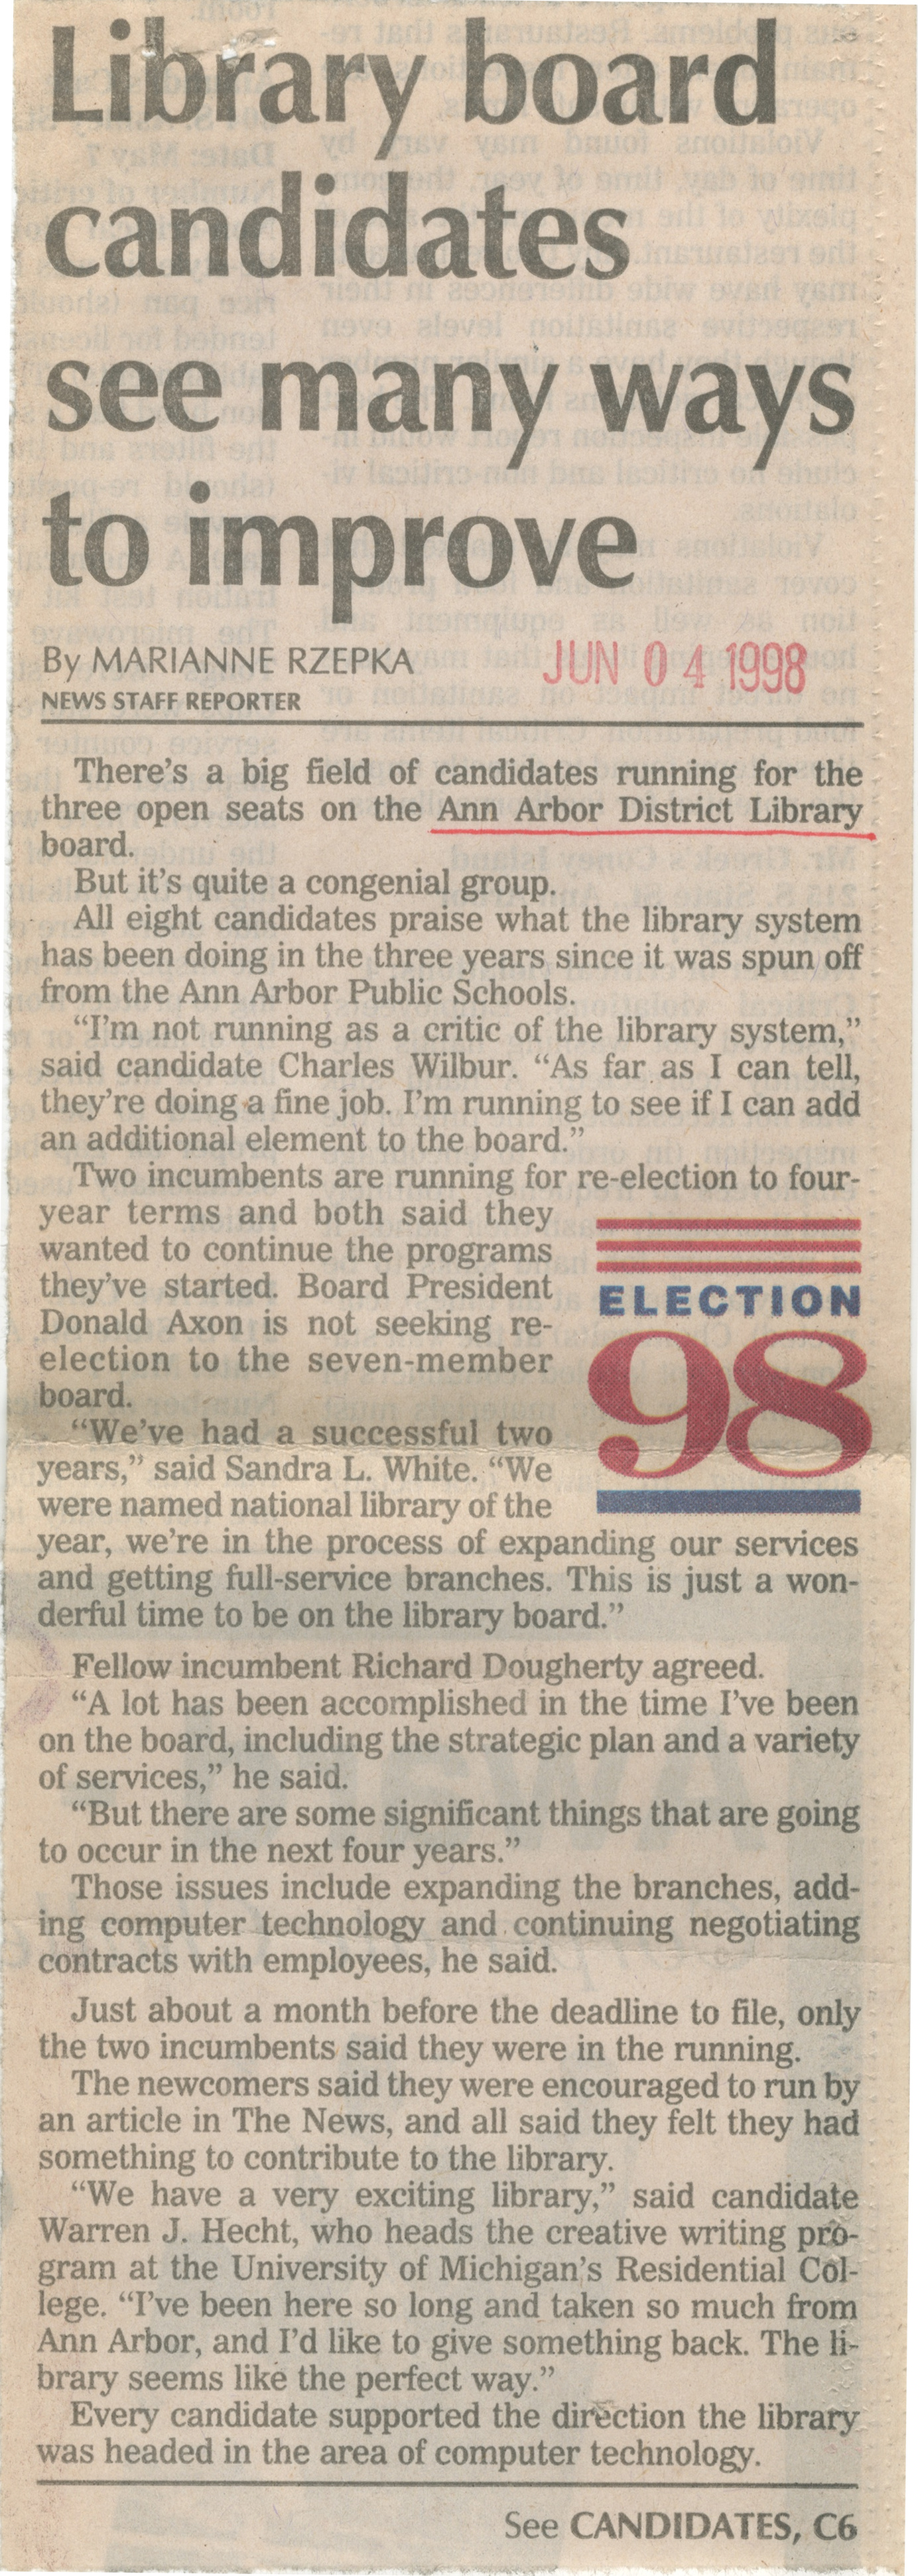 Election 98: Library Board Candidates See Many Ways To Improve image